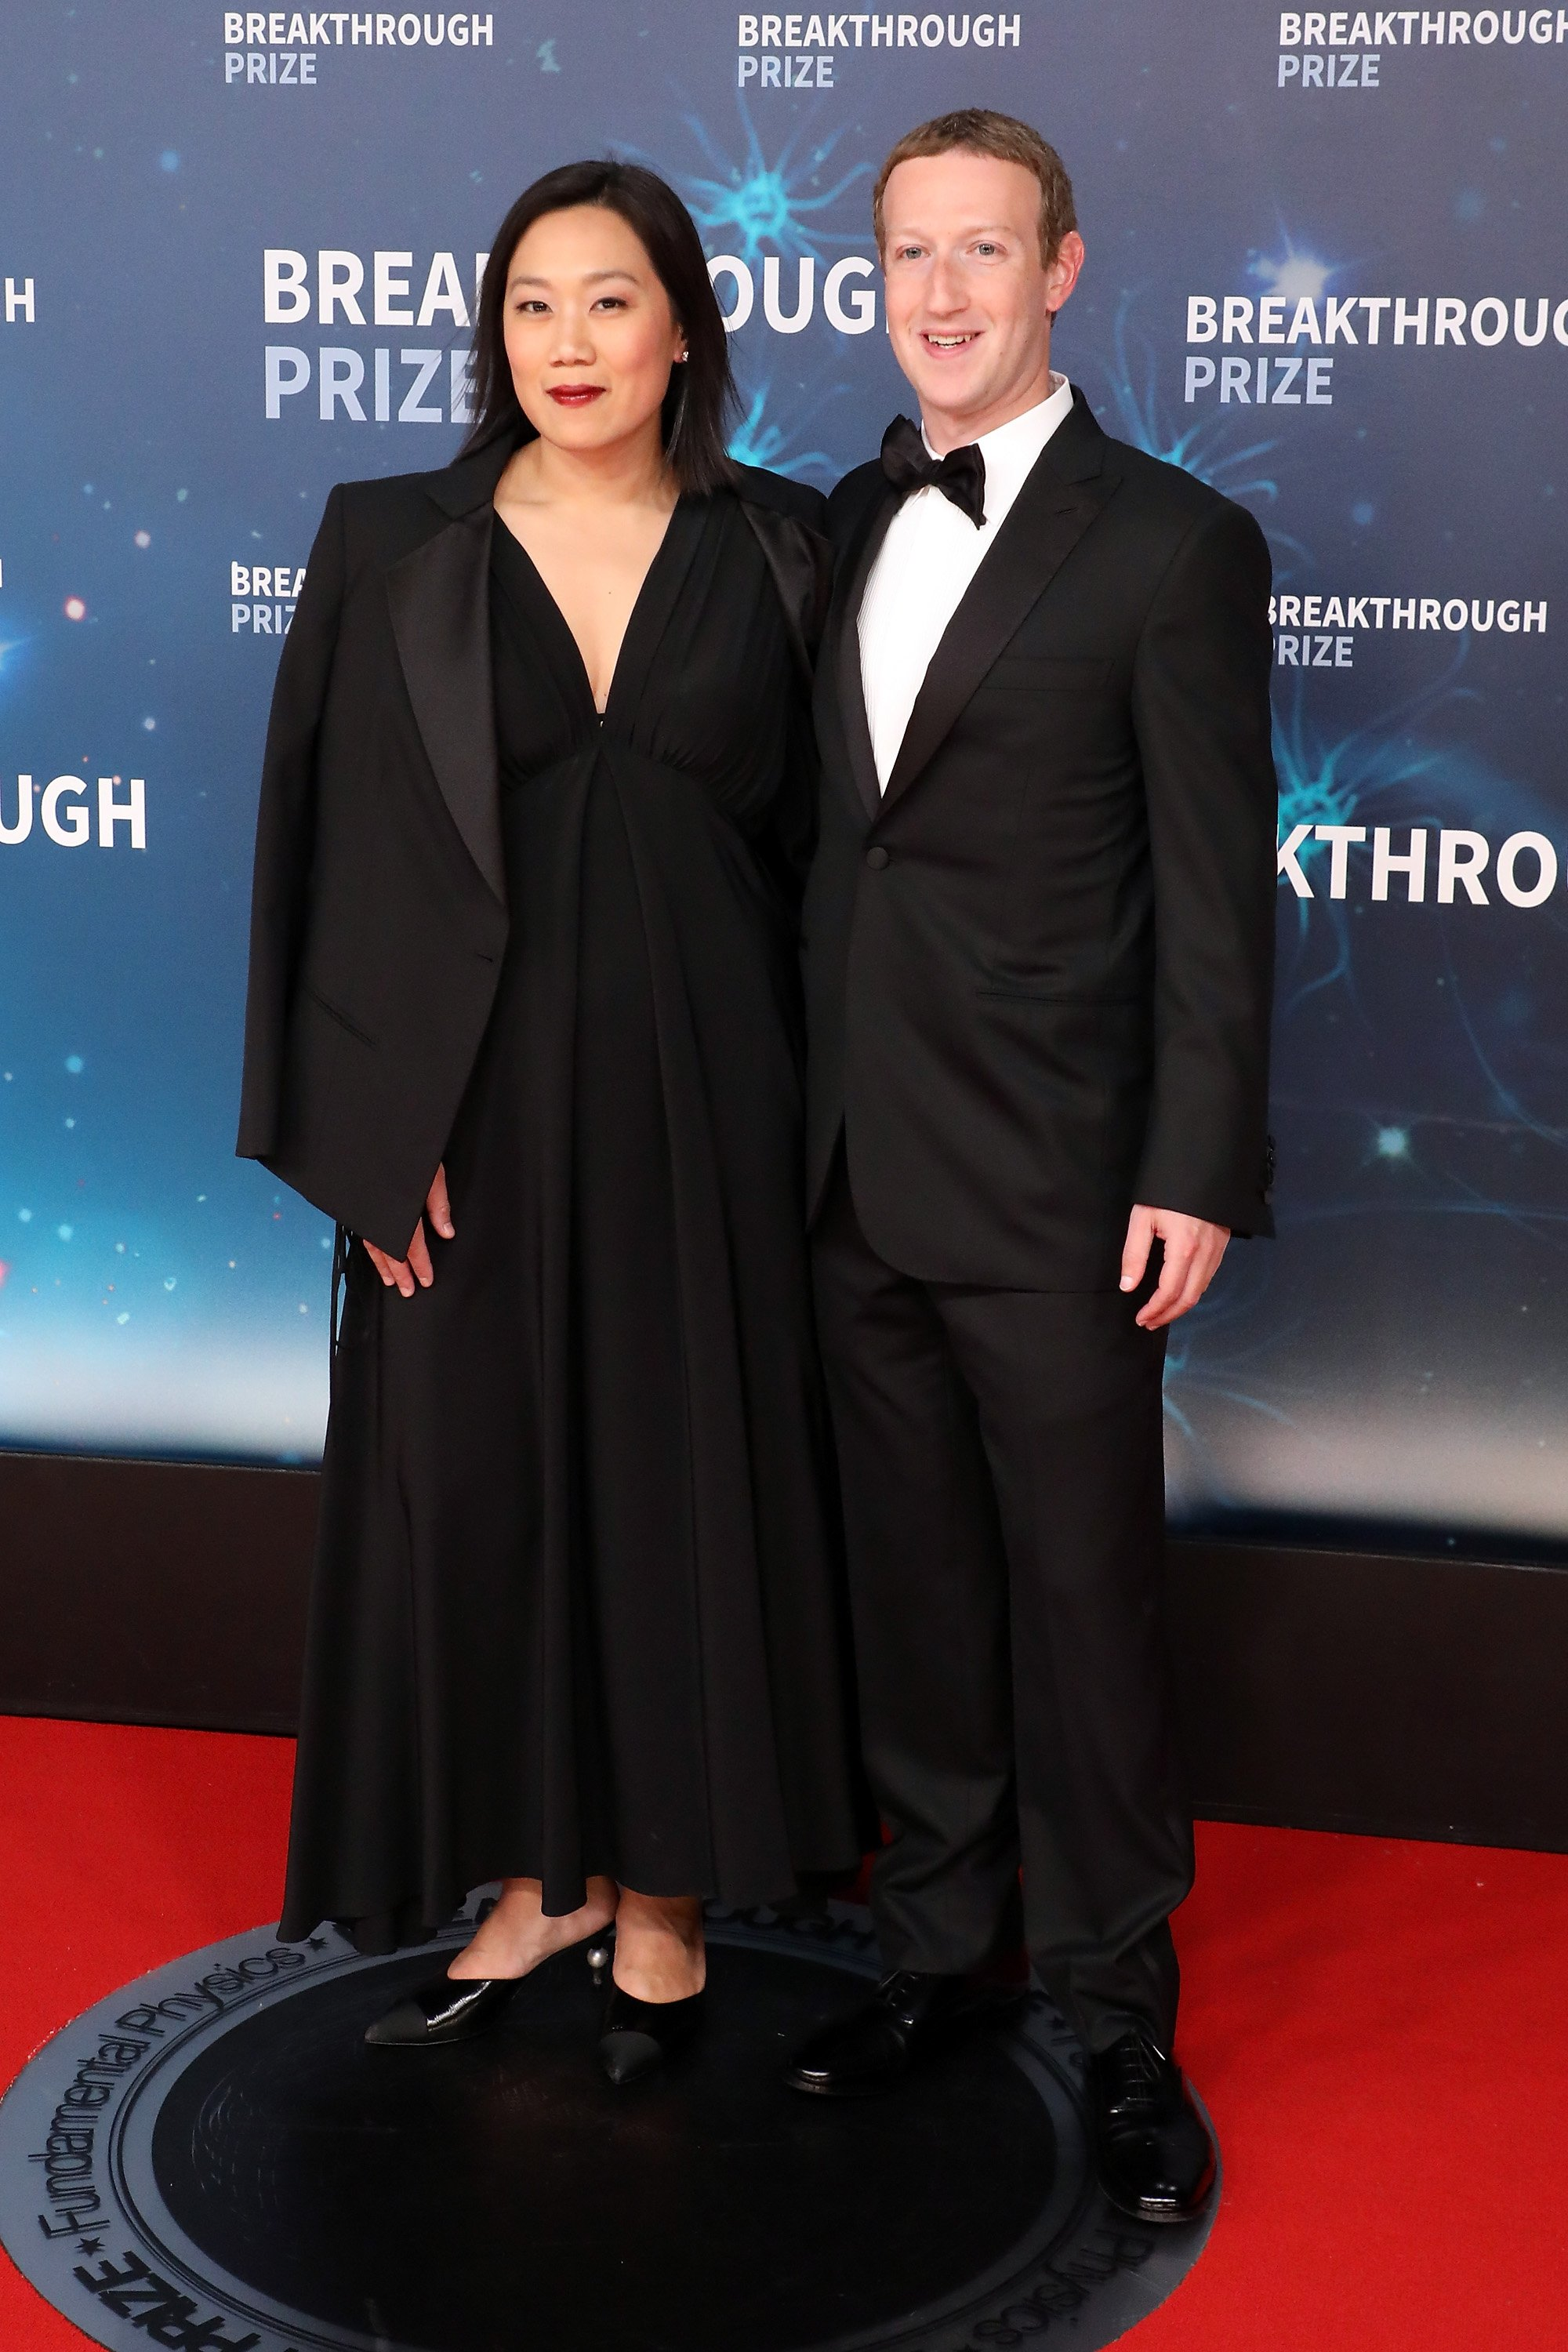 Priscilla Chan and Mark Zuckerberg attend the 2020 Breakthrough Prize Ceremony at NASA Ames Research Center on November 03, 2019 in Mountain View, California. | Photo: GettyImages